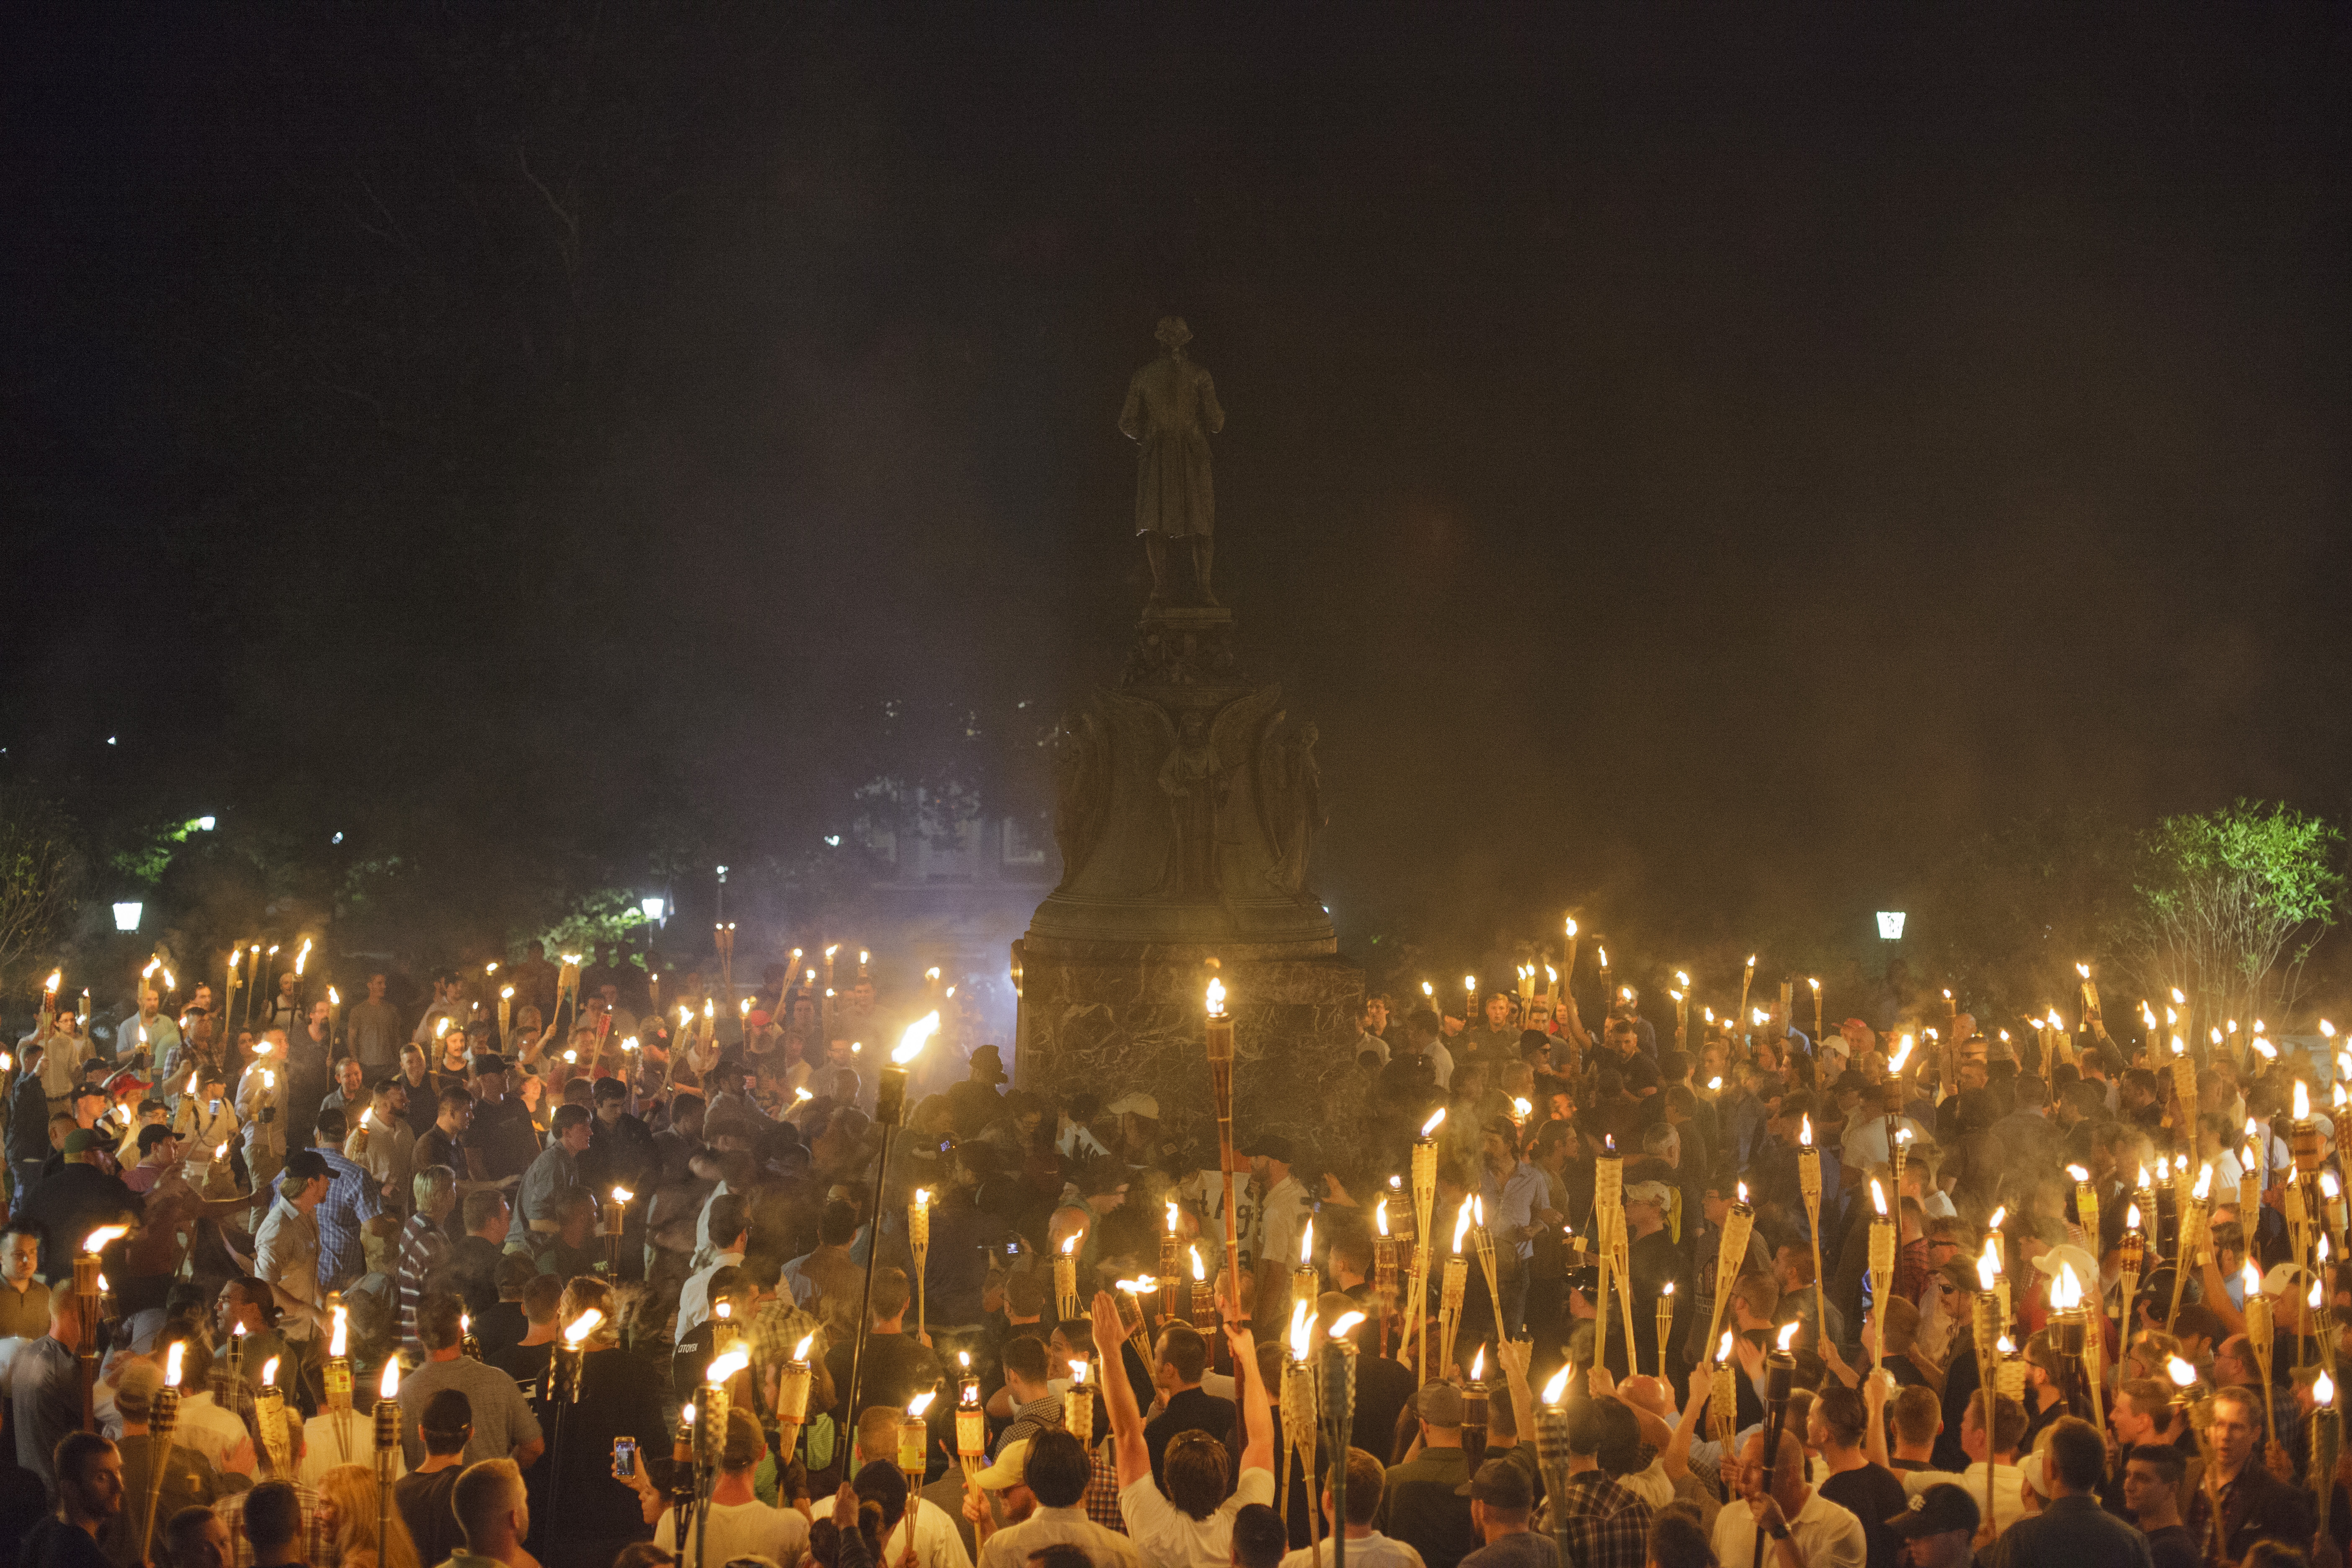 Alt Right, Neo Nazis hold torch rally at UVA.